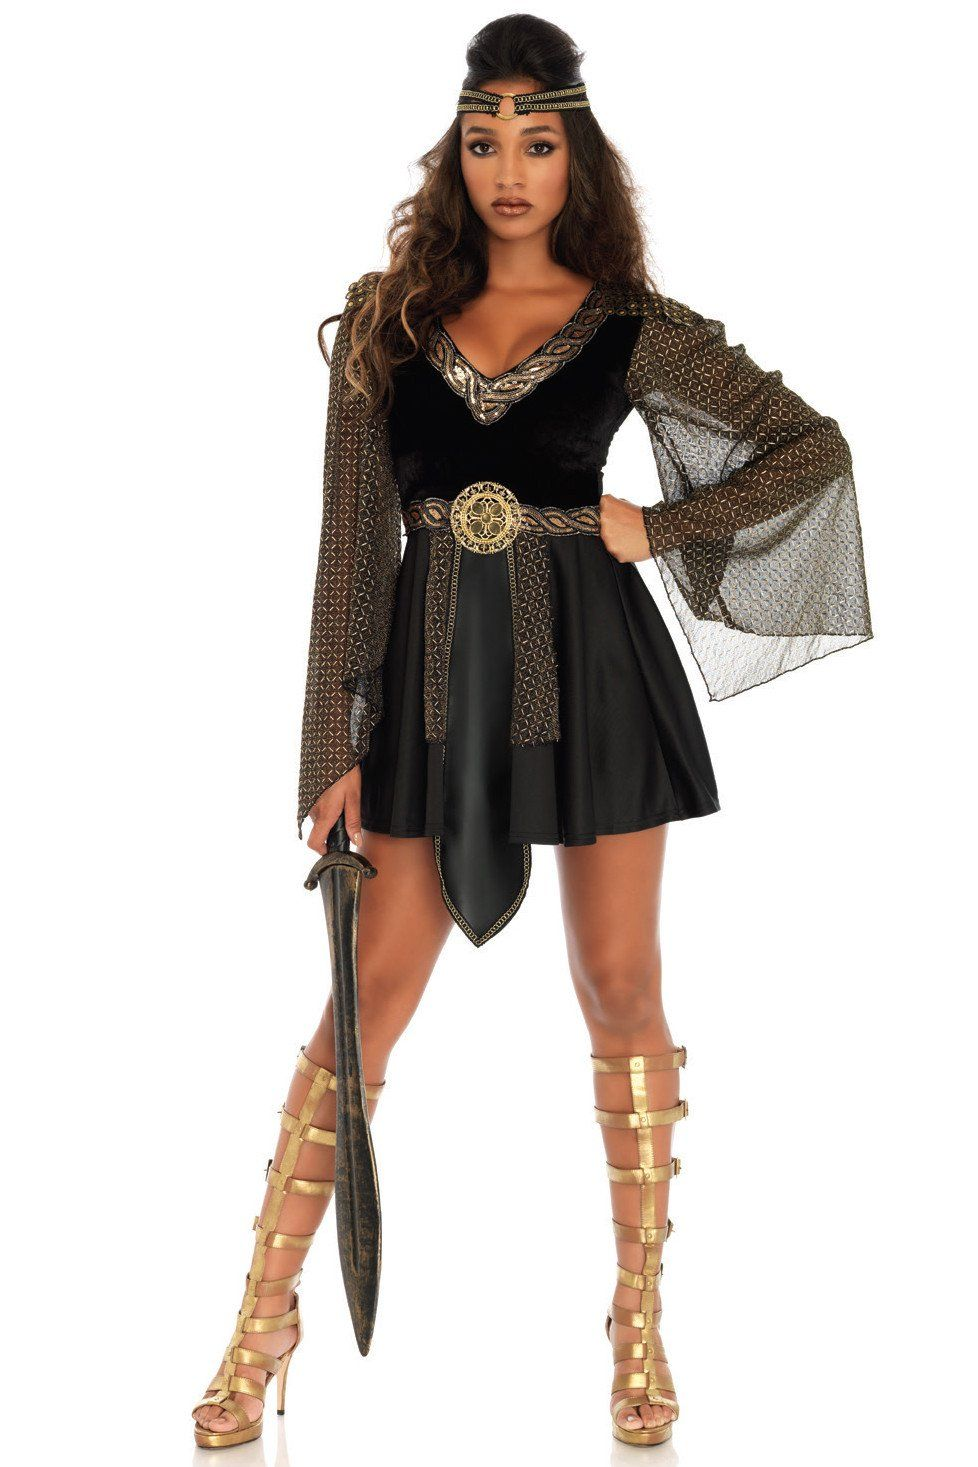 Image result for glamazon (With images) Warrior costume